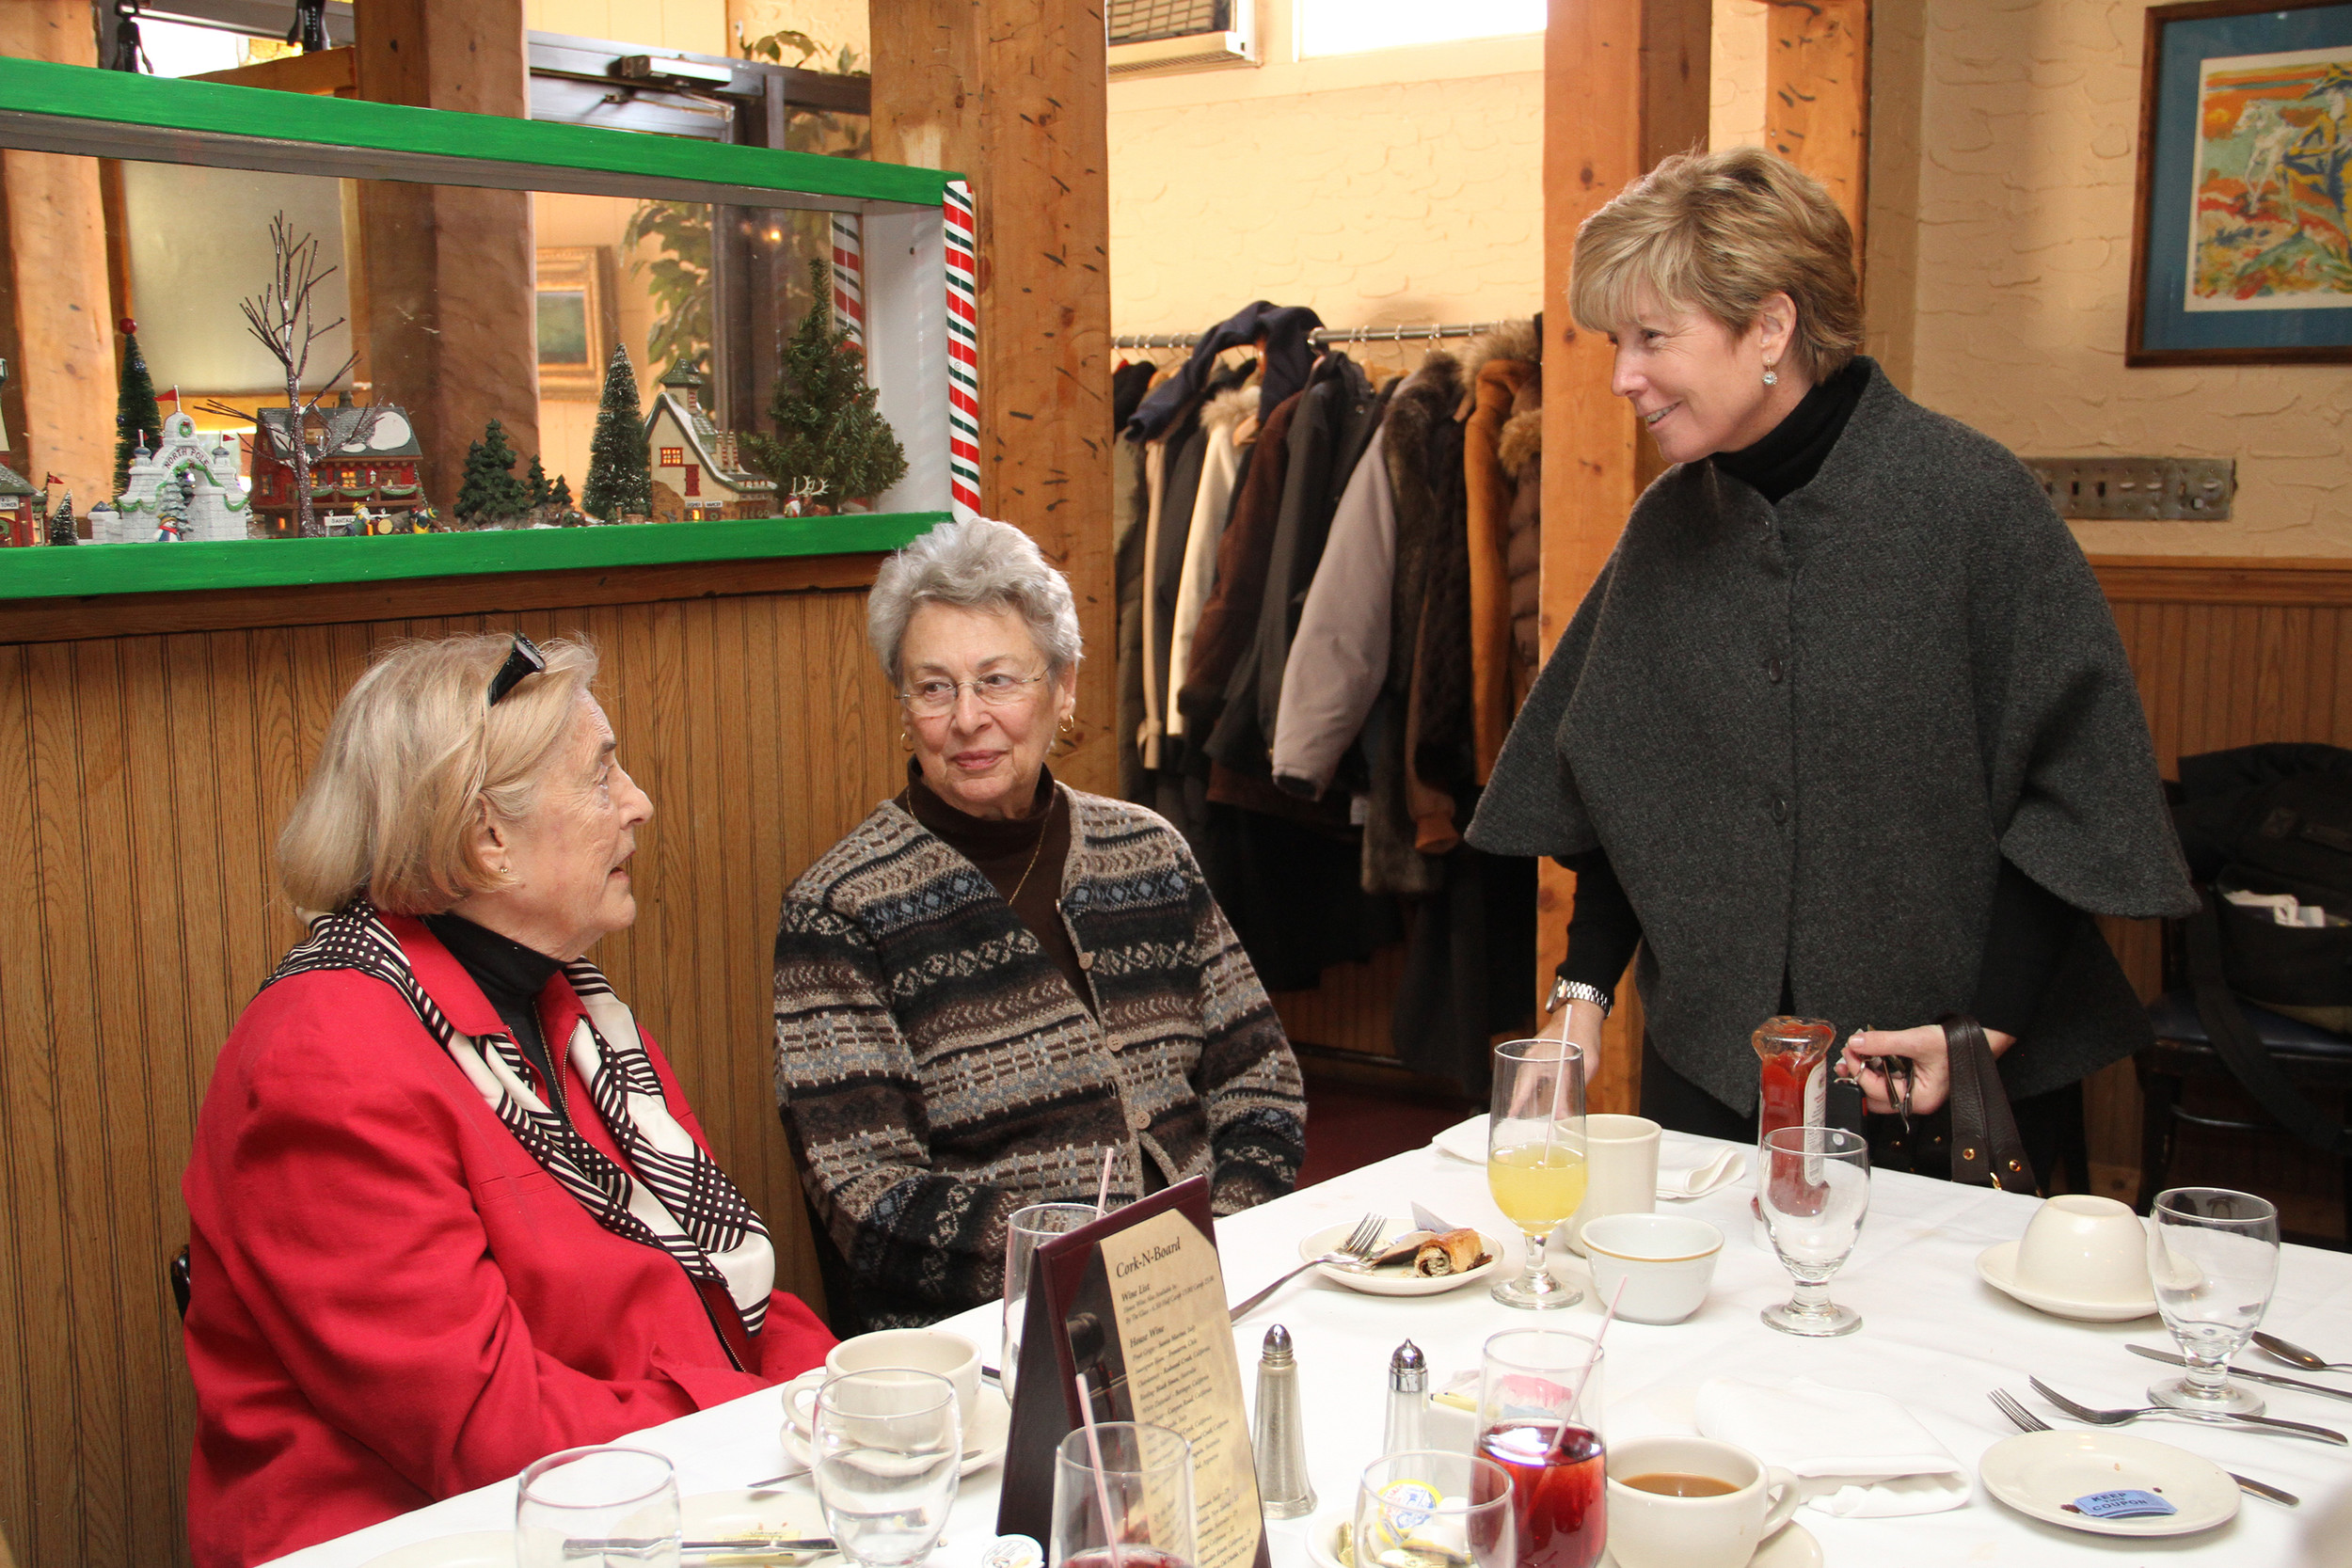 McDonald chats with Ginny Lein and Janis Auwarter.